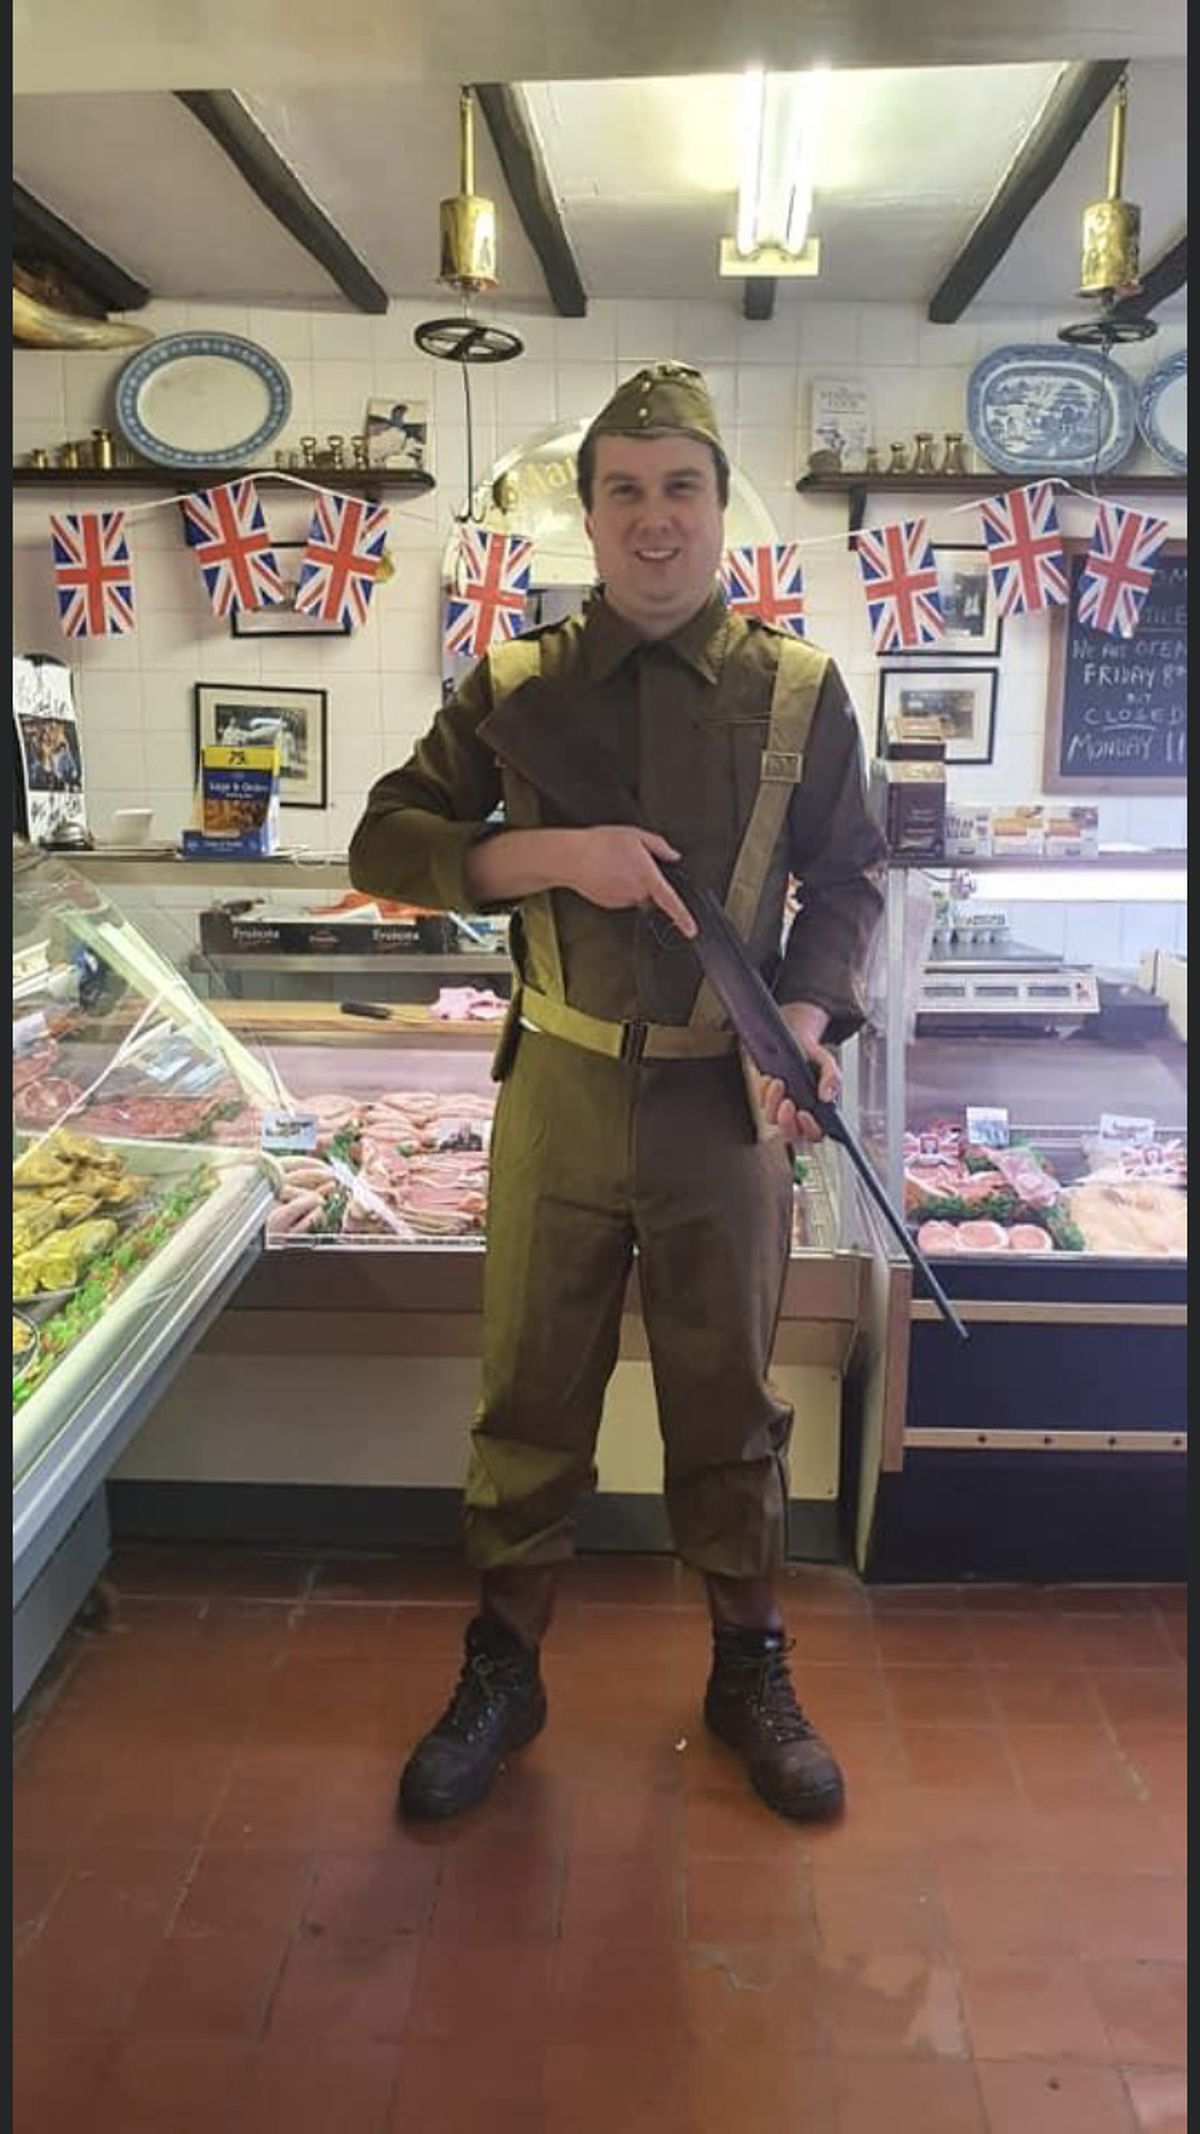 W Maiden and Son family butchers are celebrating VE Day all out. Traditional war outfits and authentic WW2 memorabilia have been decorated all around the shop including pictures of war vehicles, medals, WW2 certificates and decorated cakes.